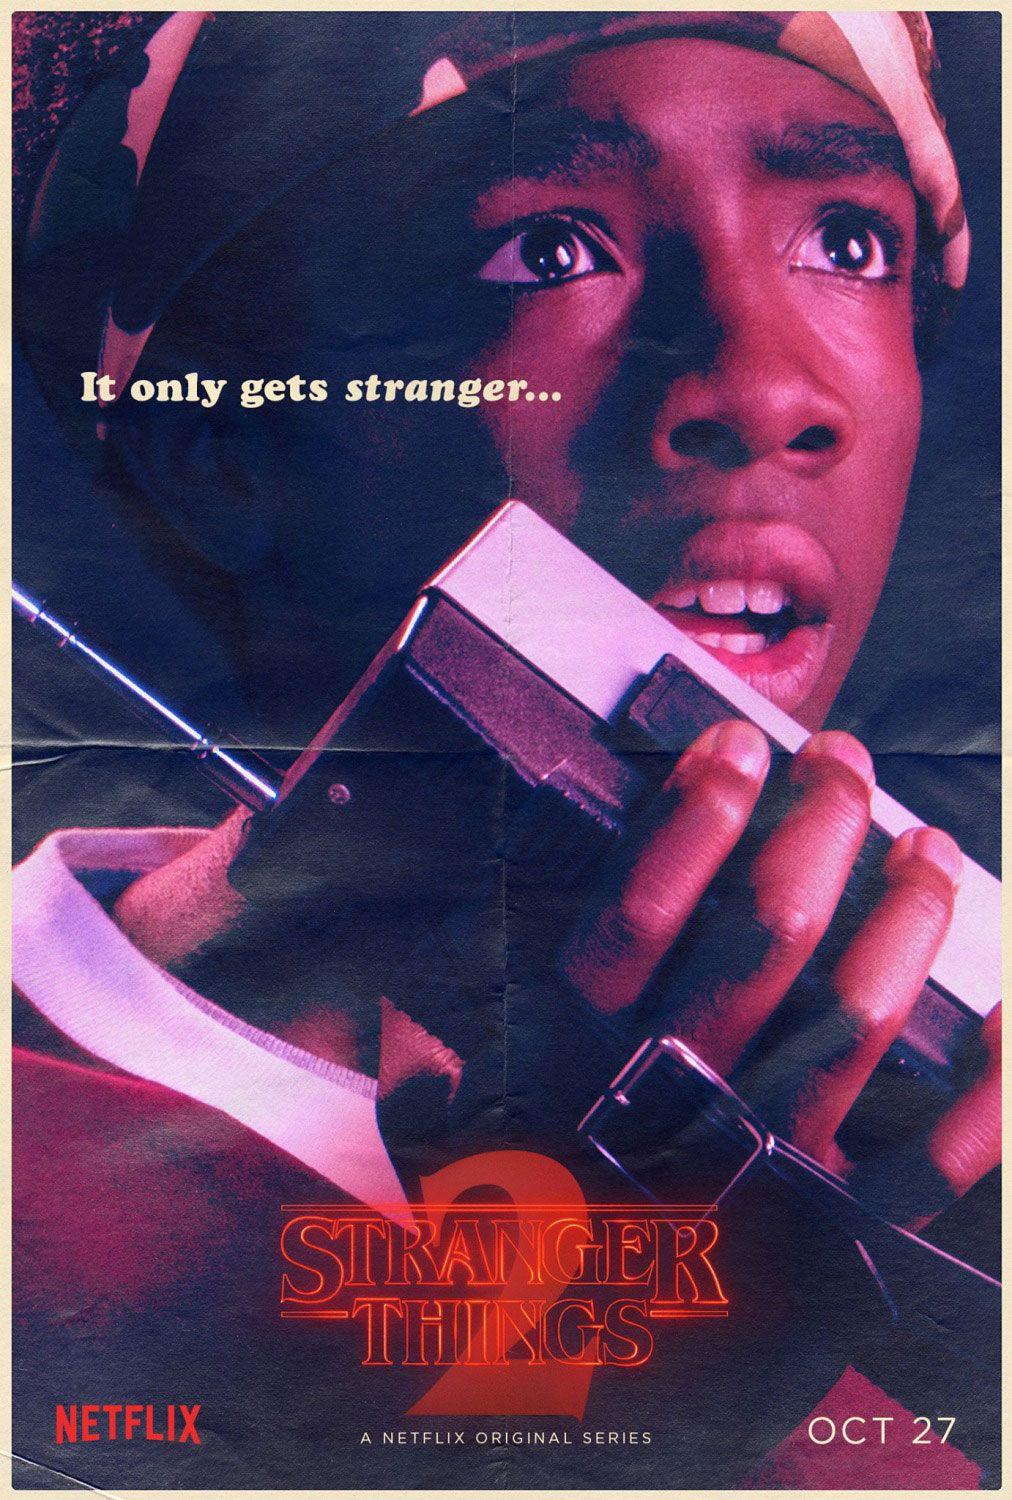 Stranger Things Lucas Sinclair poster